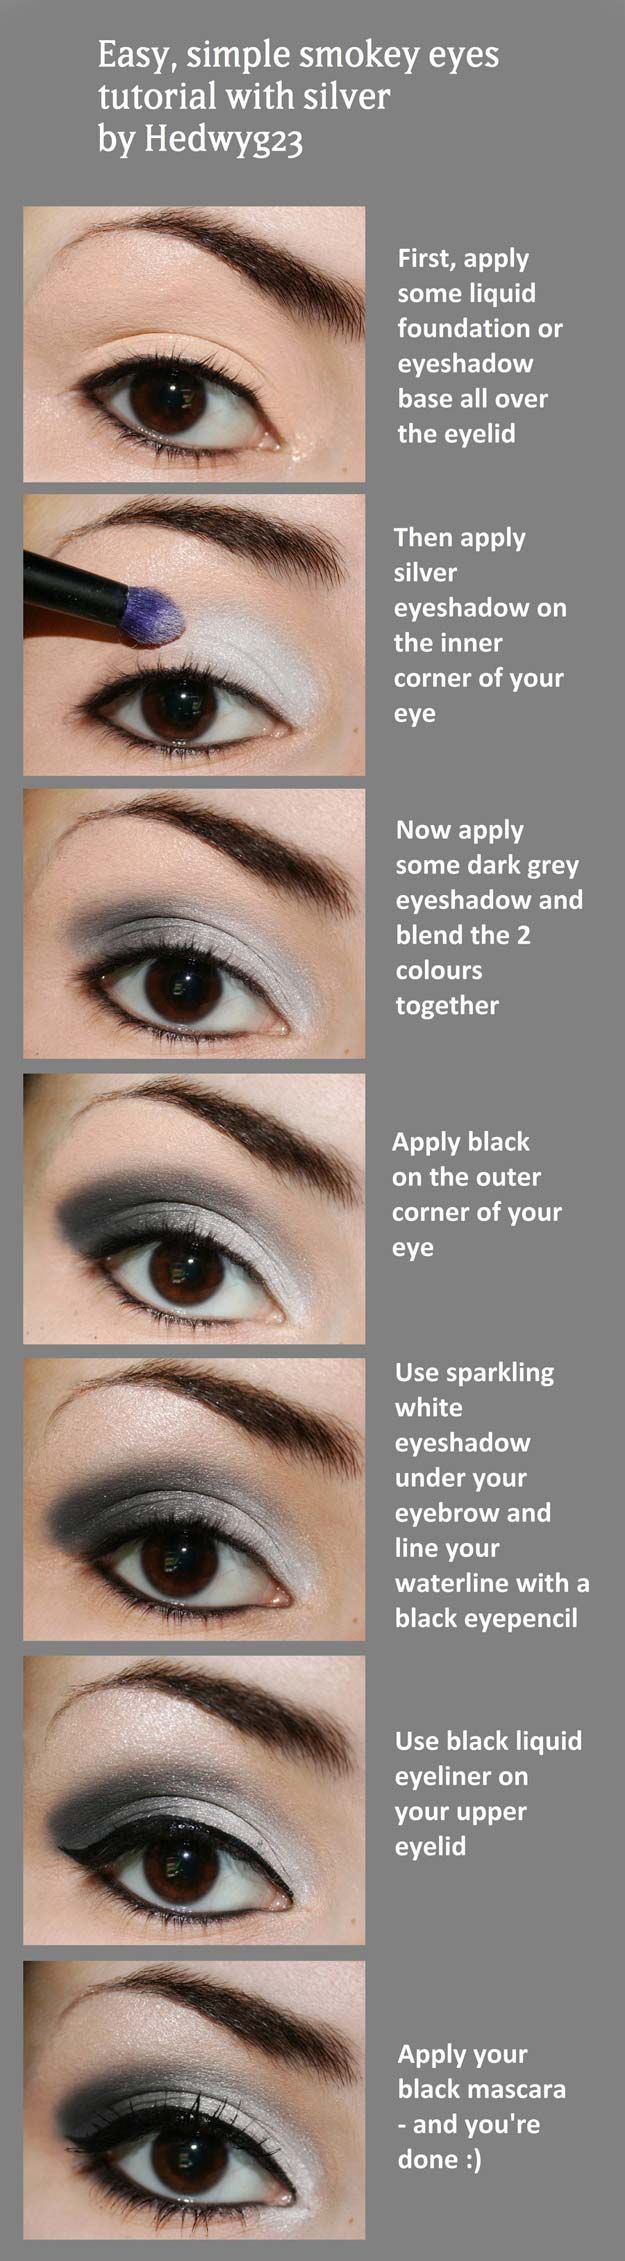 29 Step by Step Smokey Eye Tutorials #step #smokey #tutorials